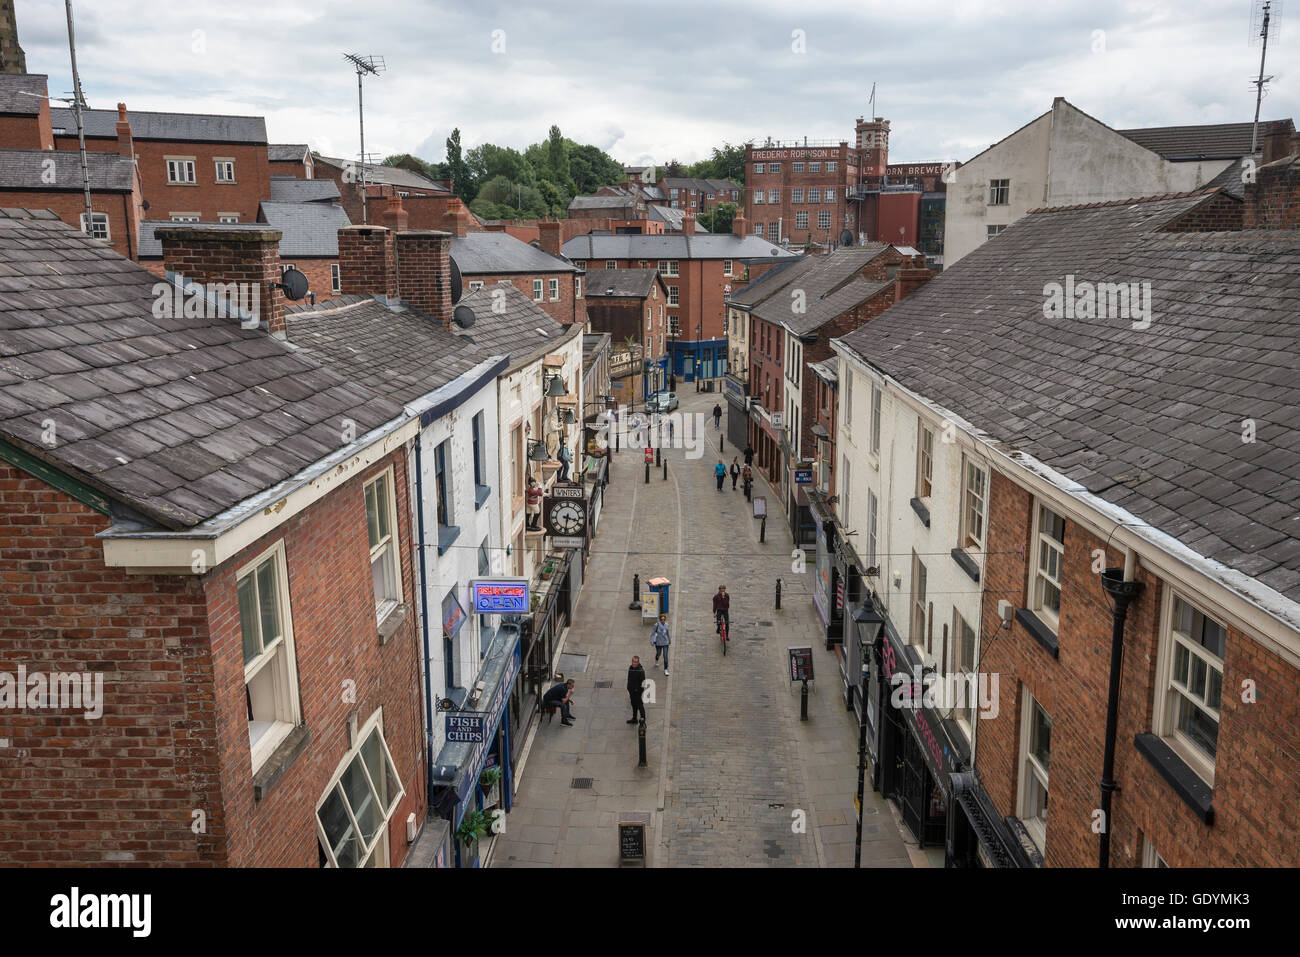 Overhead view of a shopping street in the town of Stockport, Greater Manchester. - Stock Image